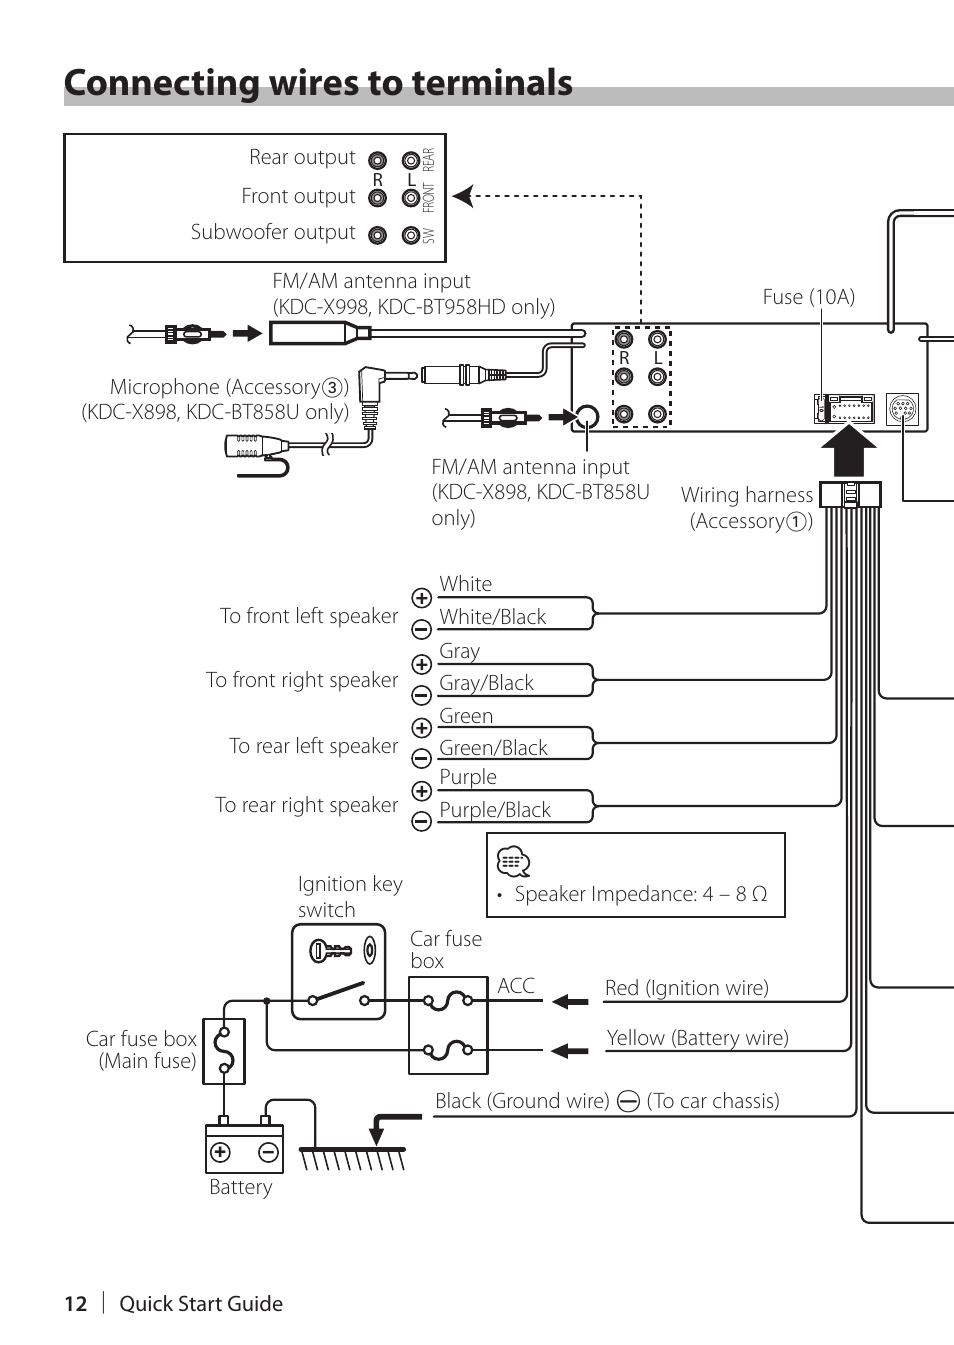 Ddx512 Wire Harness   Wiring Diagram on